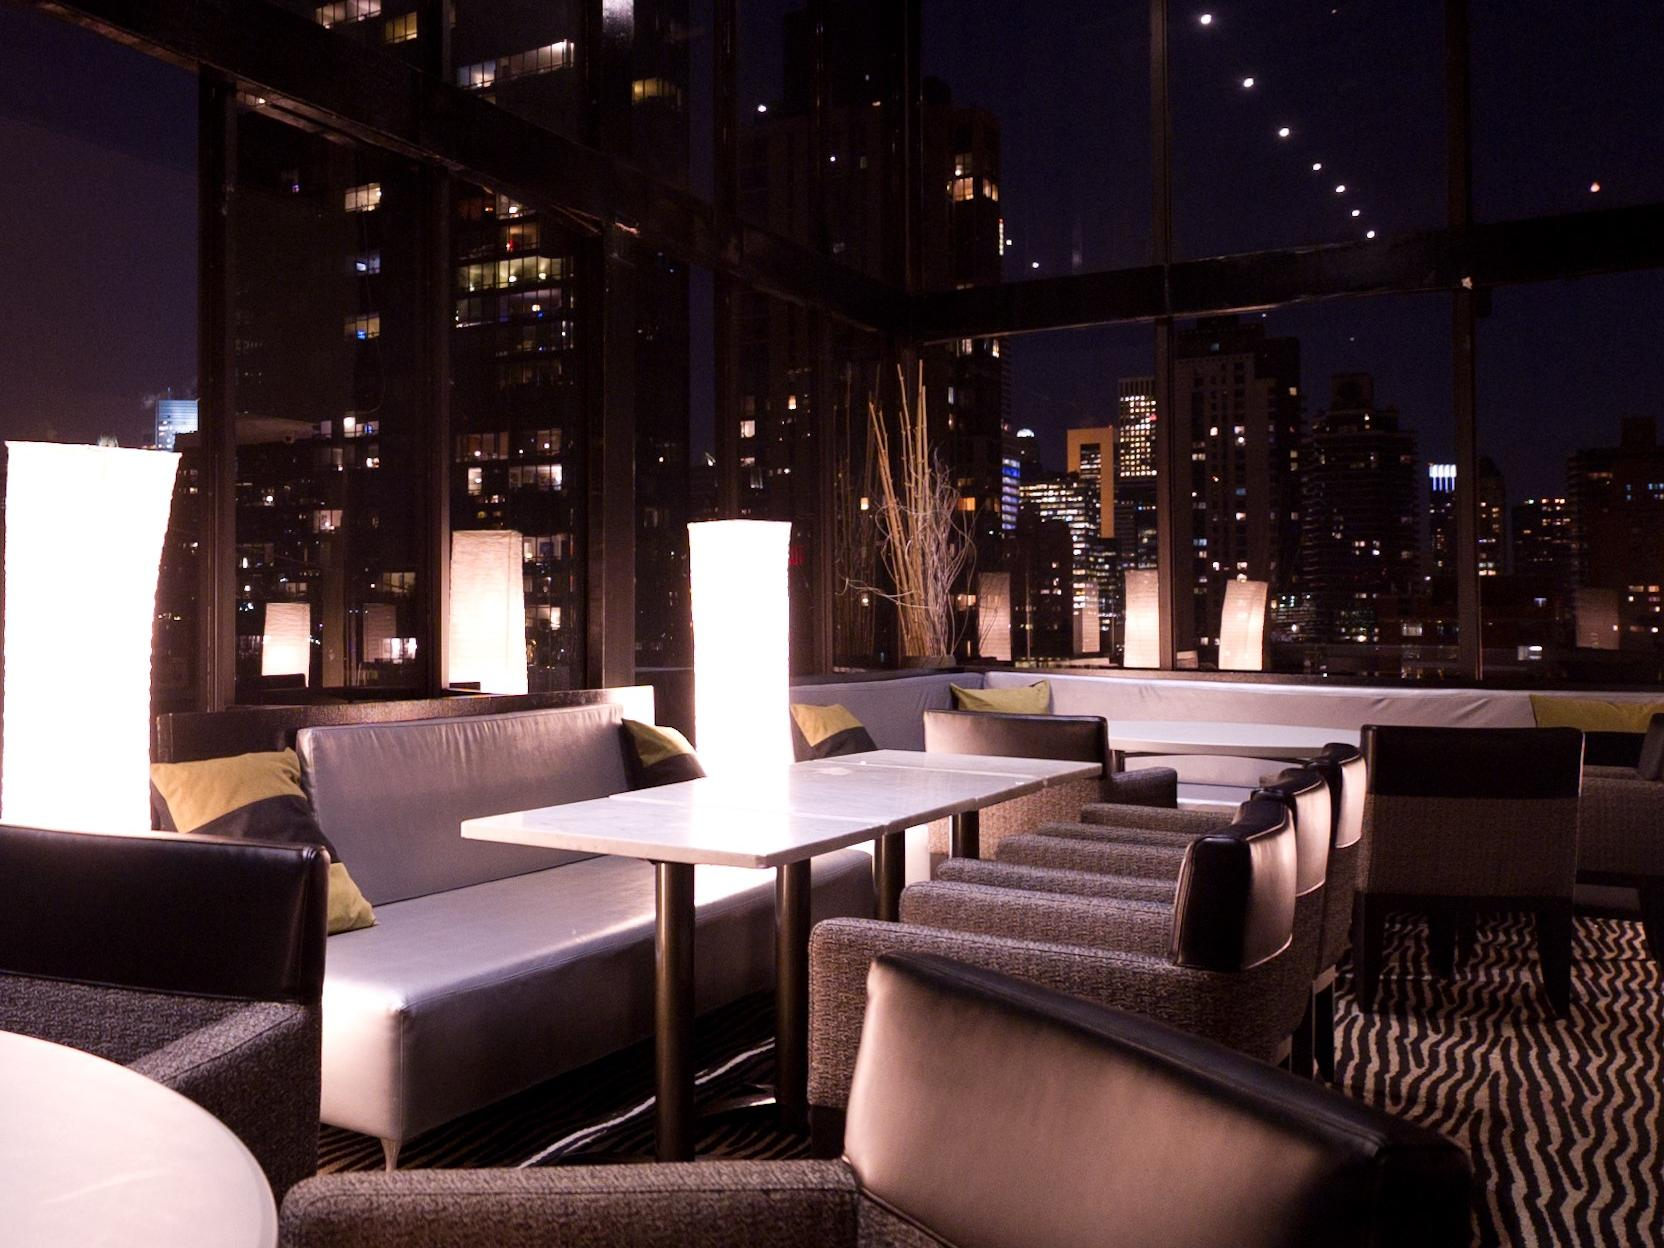 chairs and couches in a rooftop event space